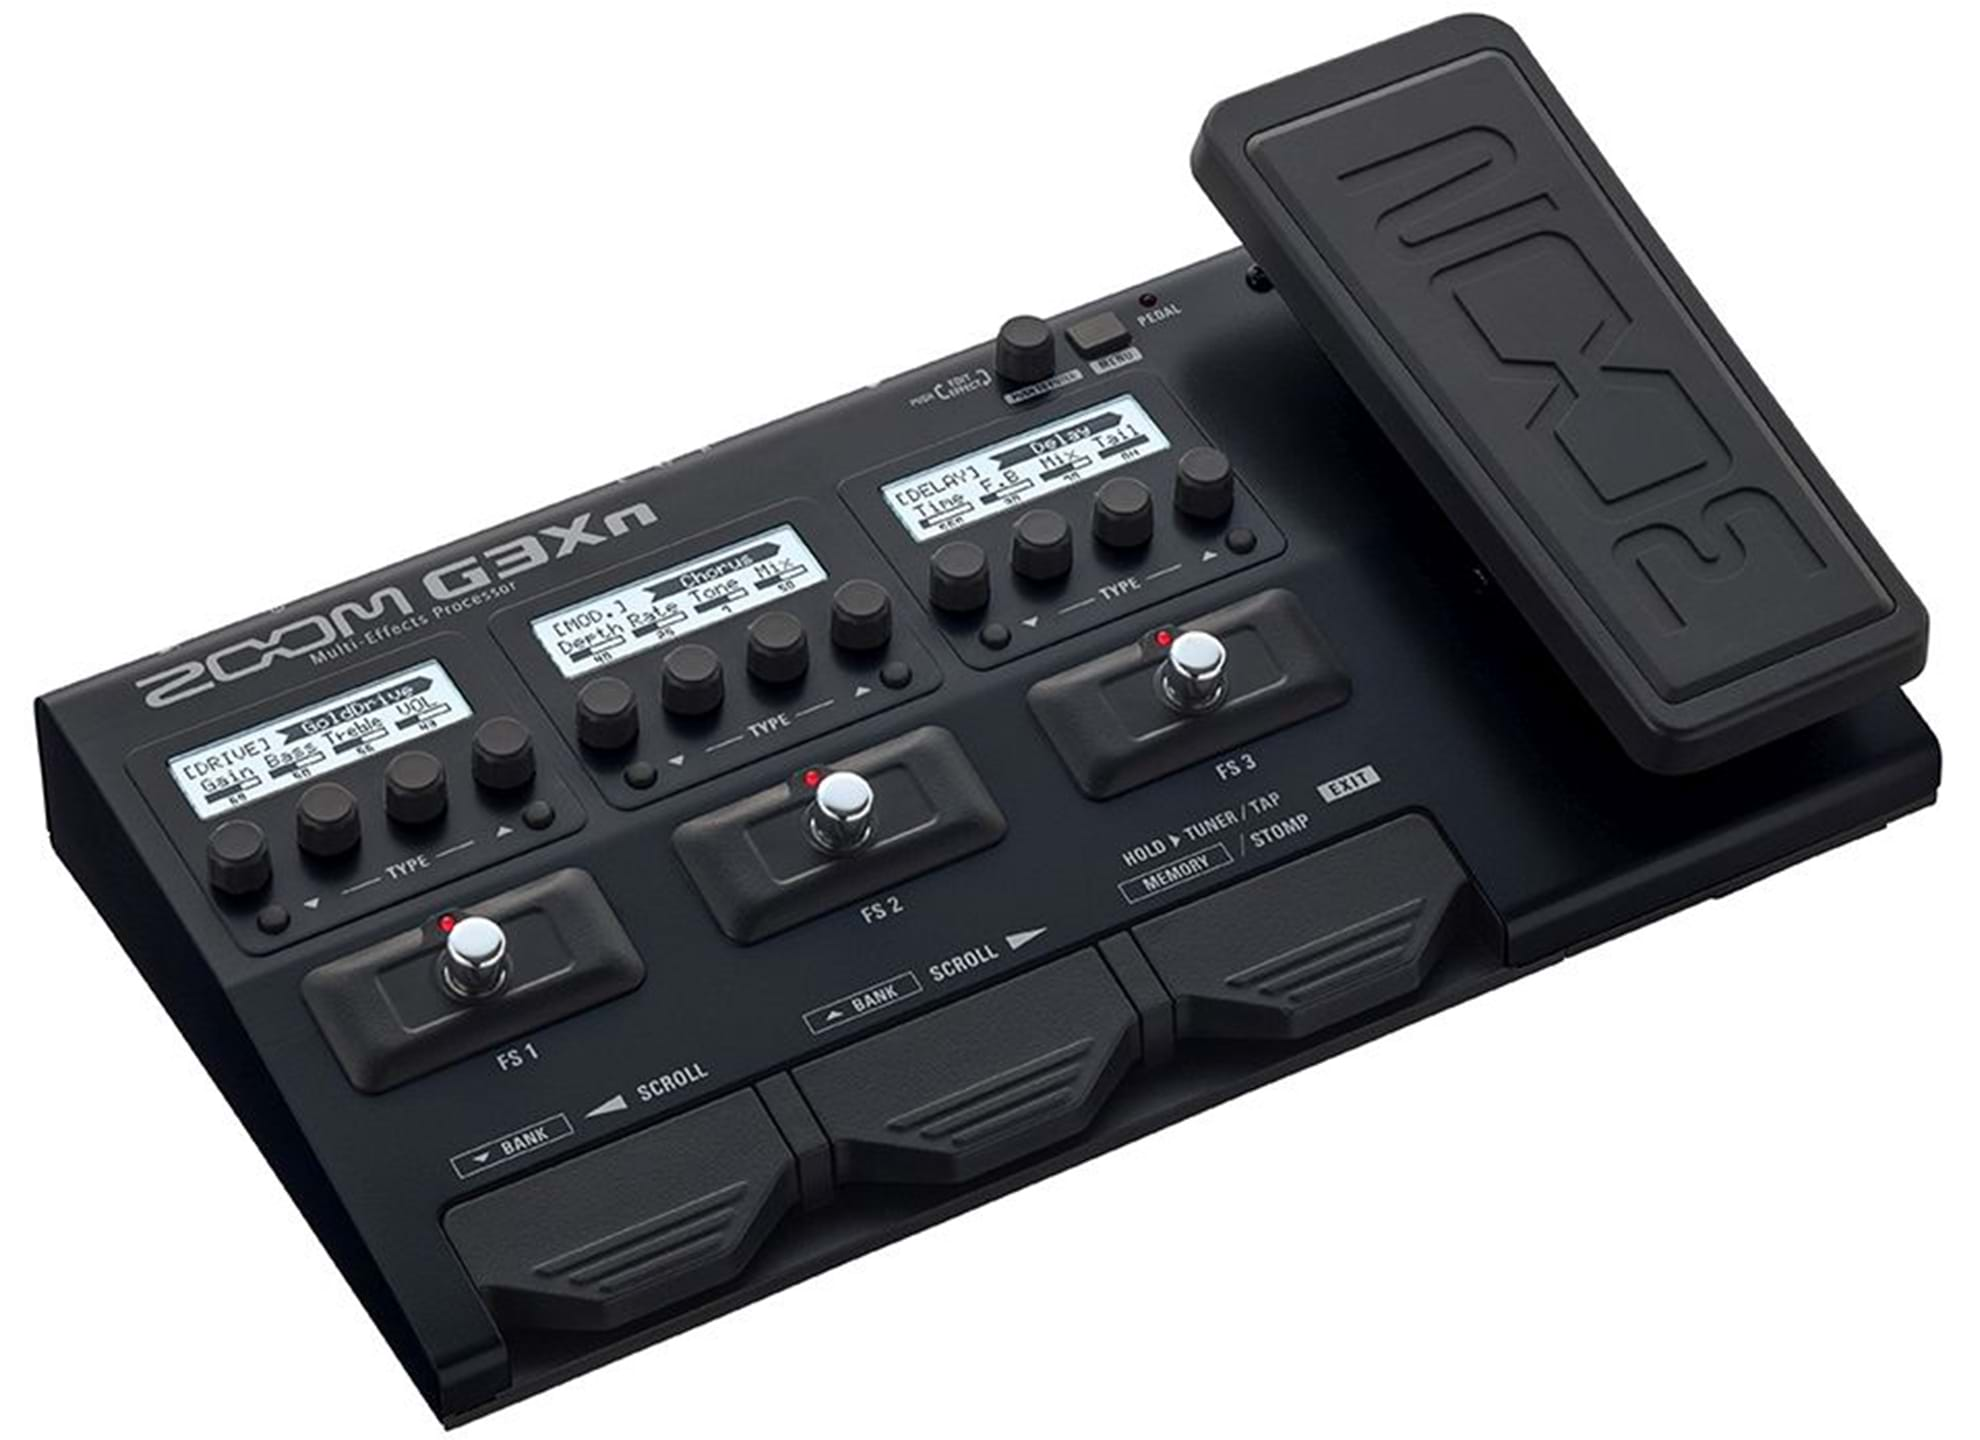 G3Xn Multi-Effects Processor